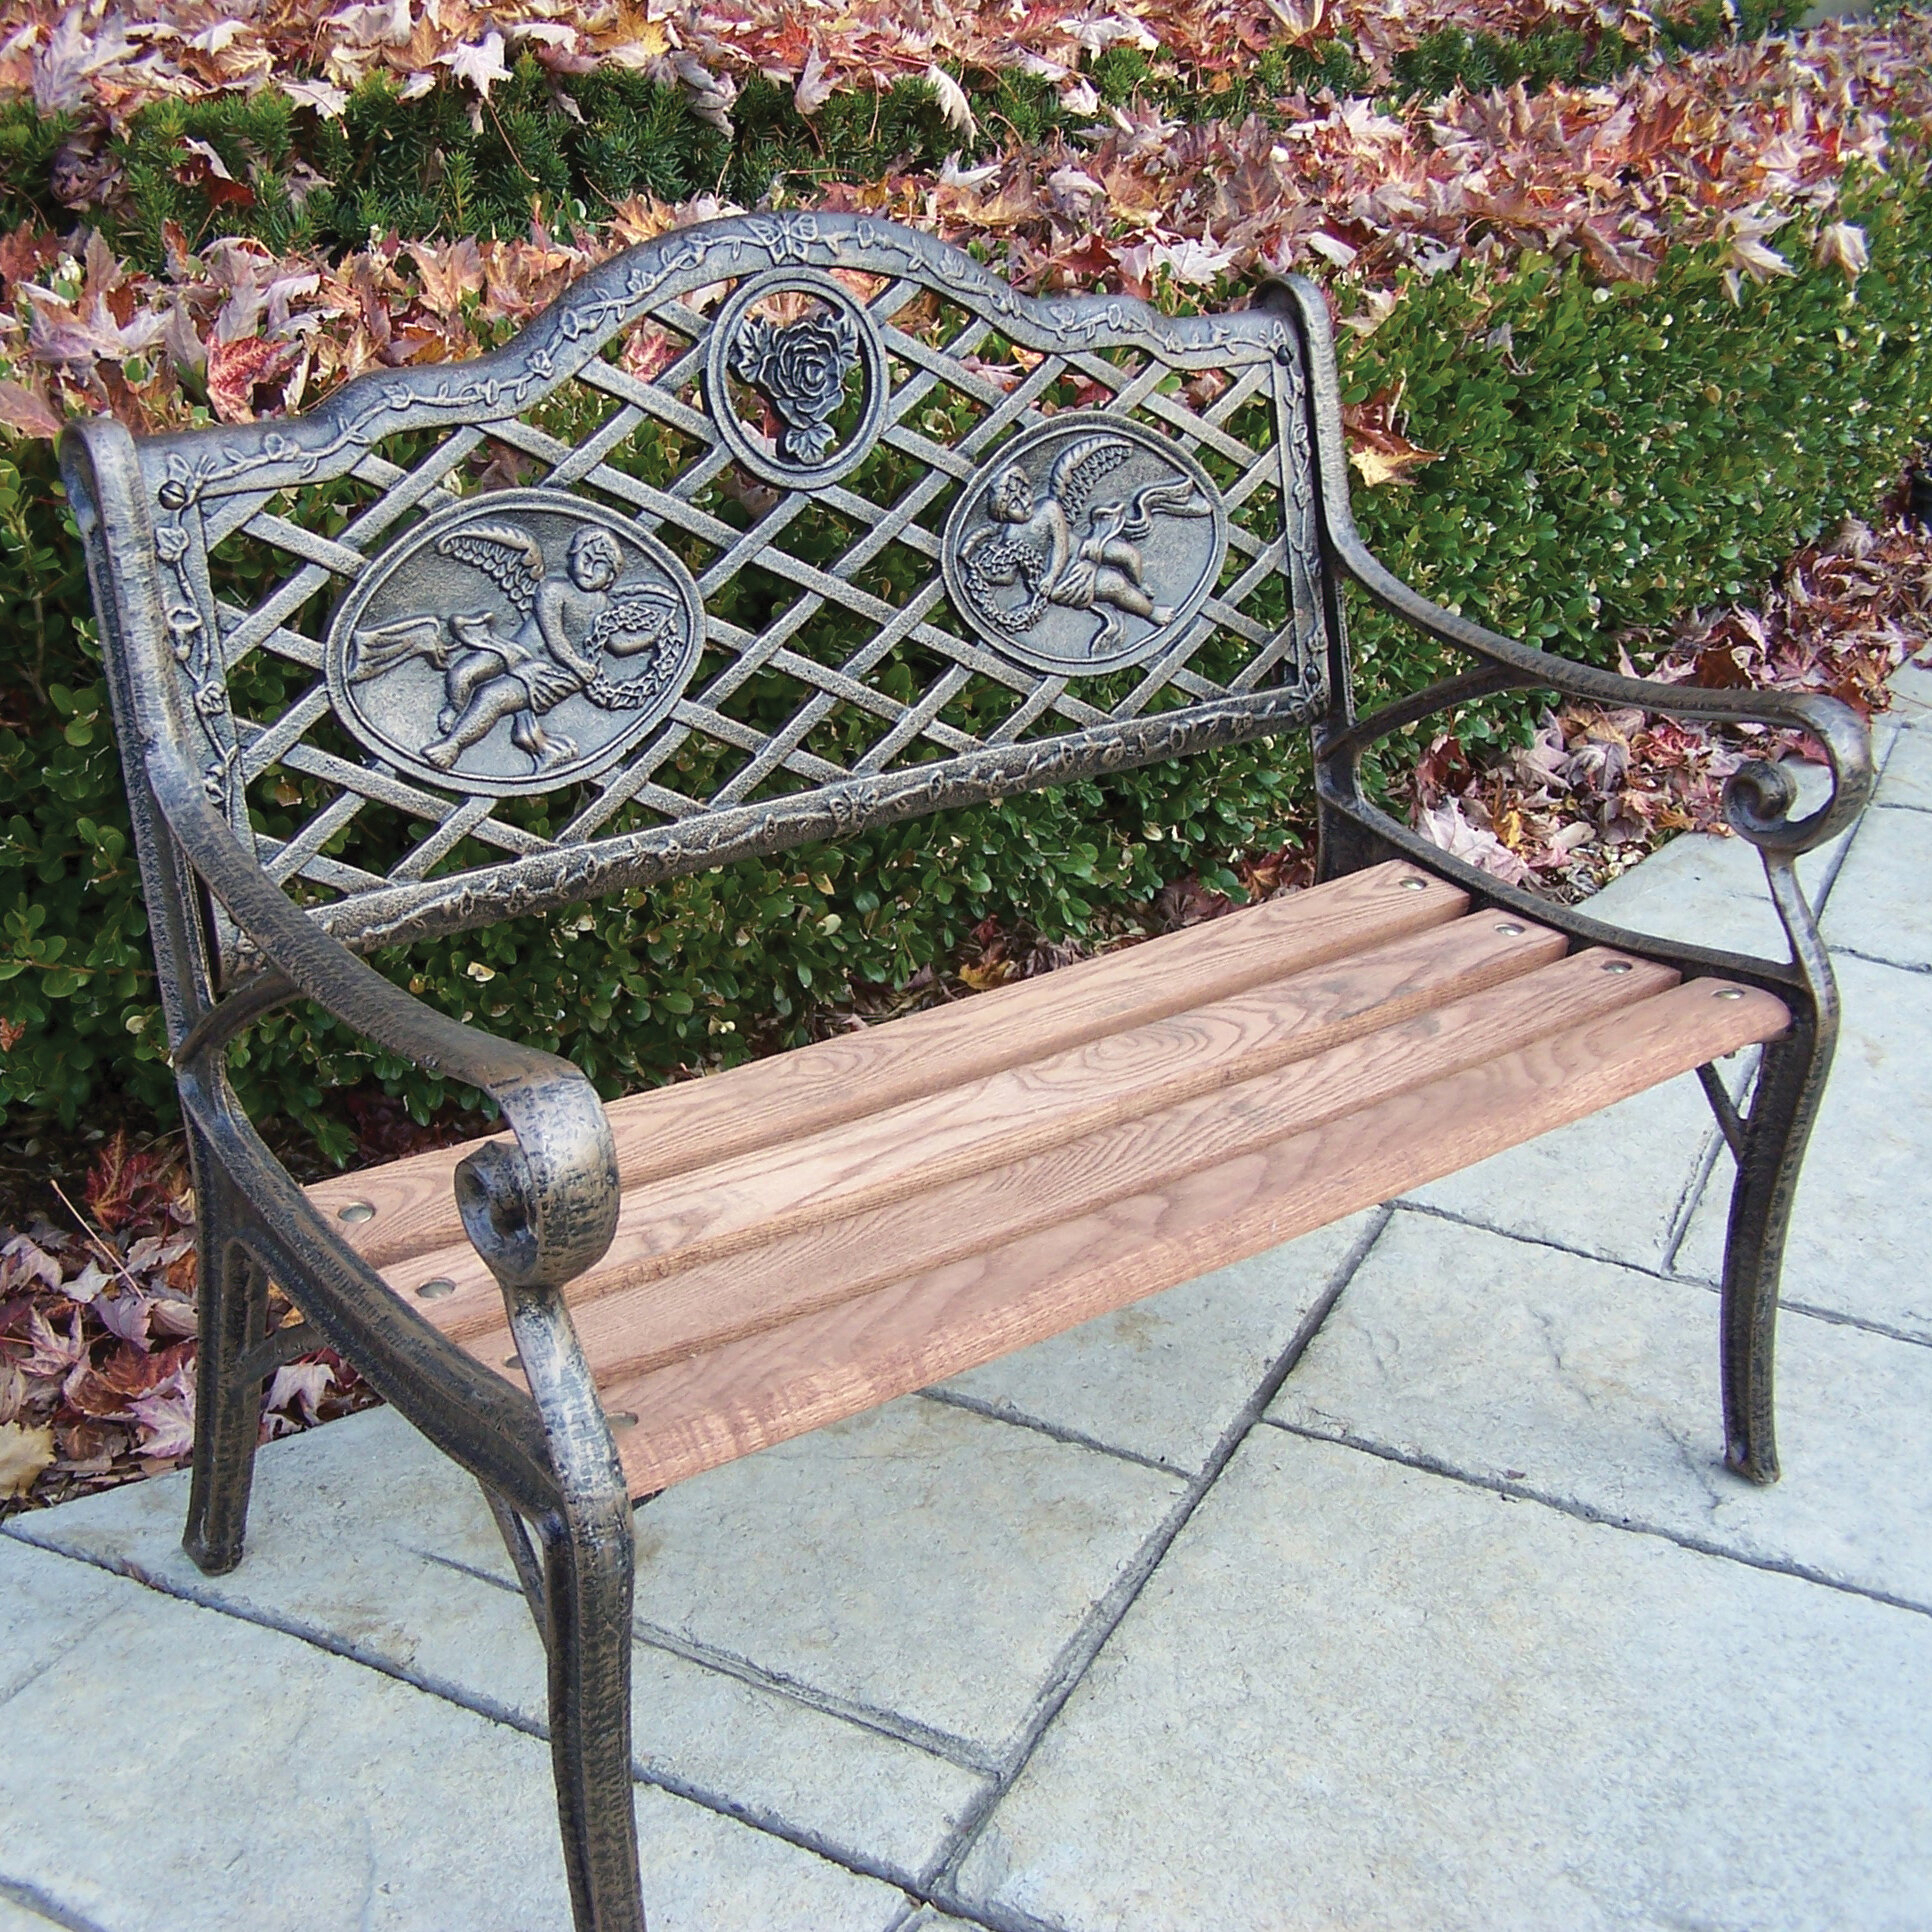 Angel Kiddy Wood And Cast Iron Park Bench In Ossu Iron Picnic Benches (View 15 of 25)